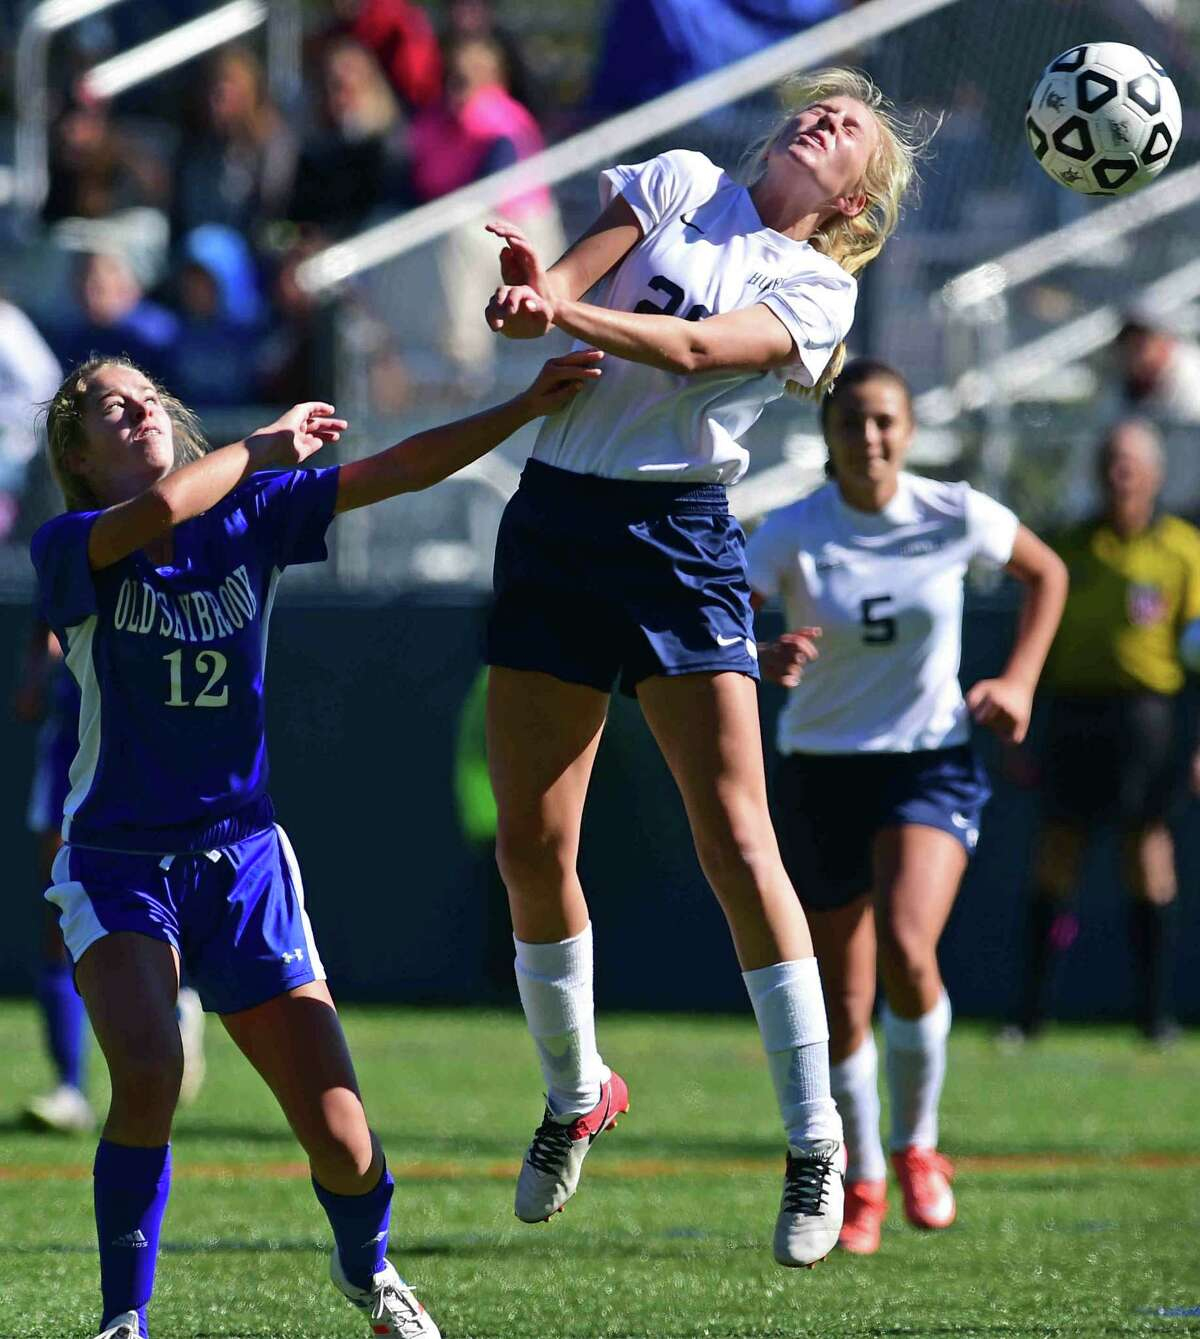 (Peter Hvizdak - New Haven Register) Jessica Stratton of Old Saybrook High School, left, covers Madison Emmi during first half girls soccer action Monday morning October 10, 2016 at the Indian River Recreational Complex in Clinton.